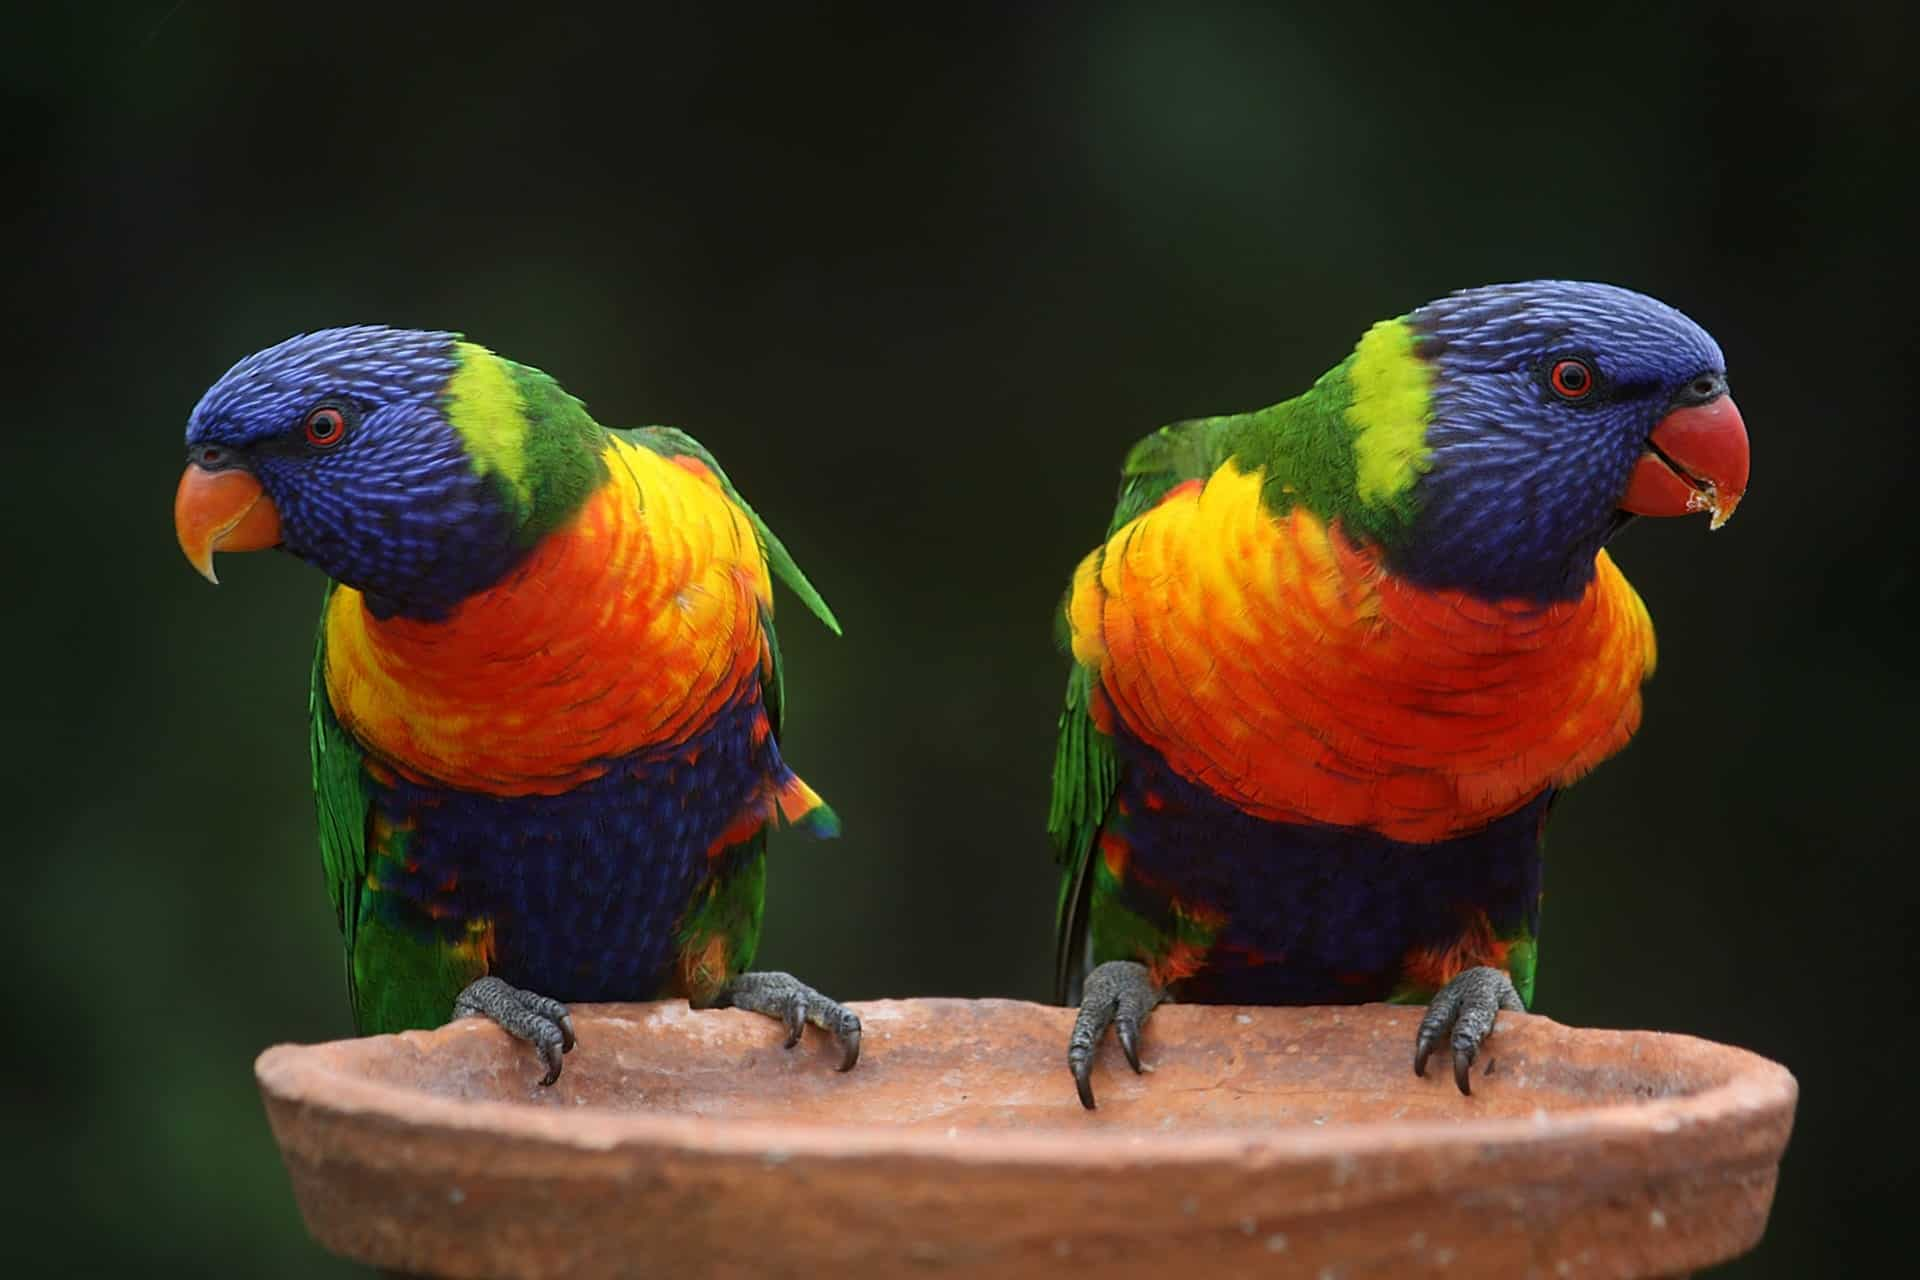 two birds rainbow-lorikeet-parrots-australia-rainbow-37833